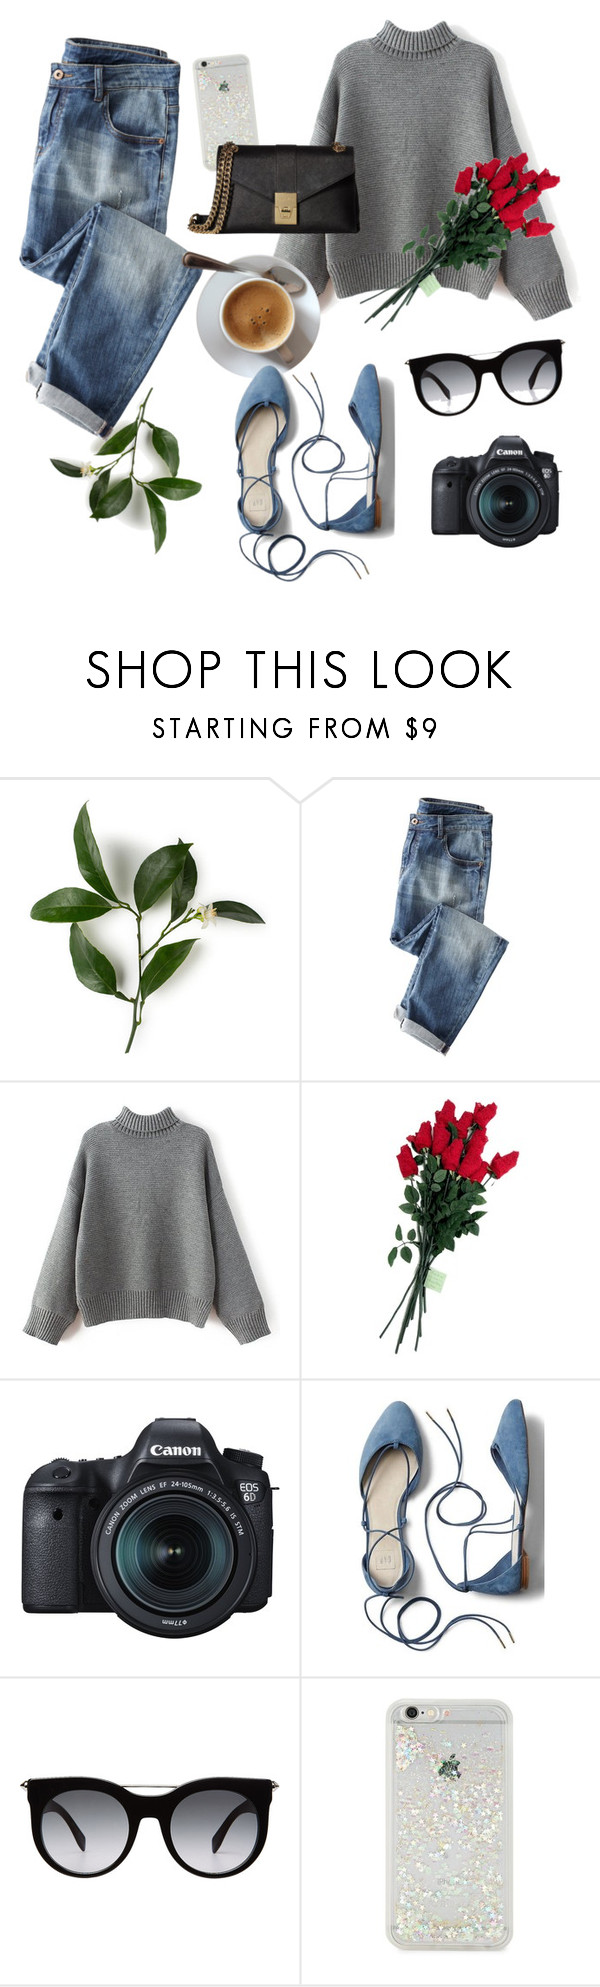 """""""059"""" by euni-ce ❤ liked on Polyvore featuring Wrap, Hanky Panky, Eos, Gap, Alexander McQueen, ban.do and Calvin Klein"""